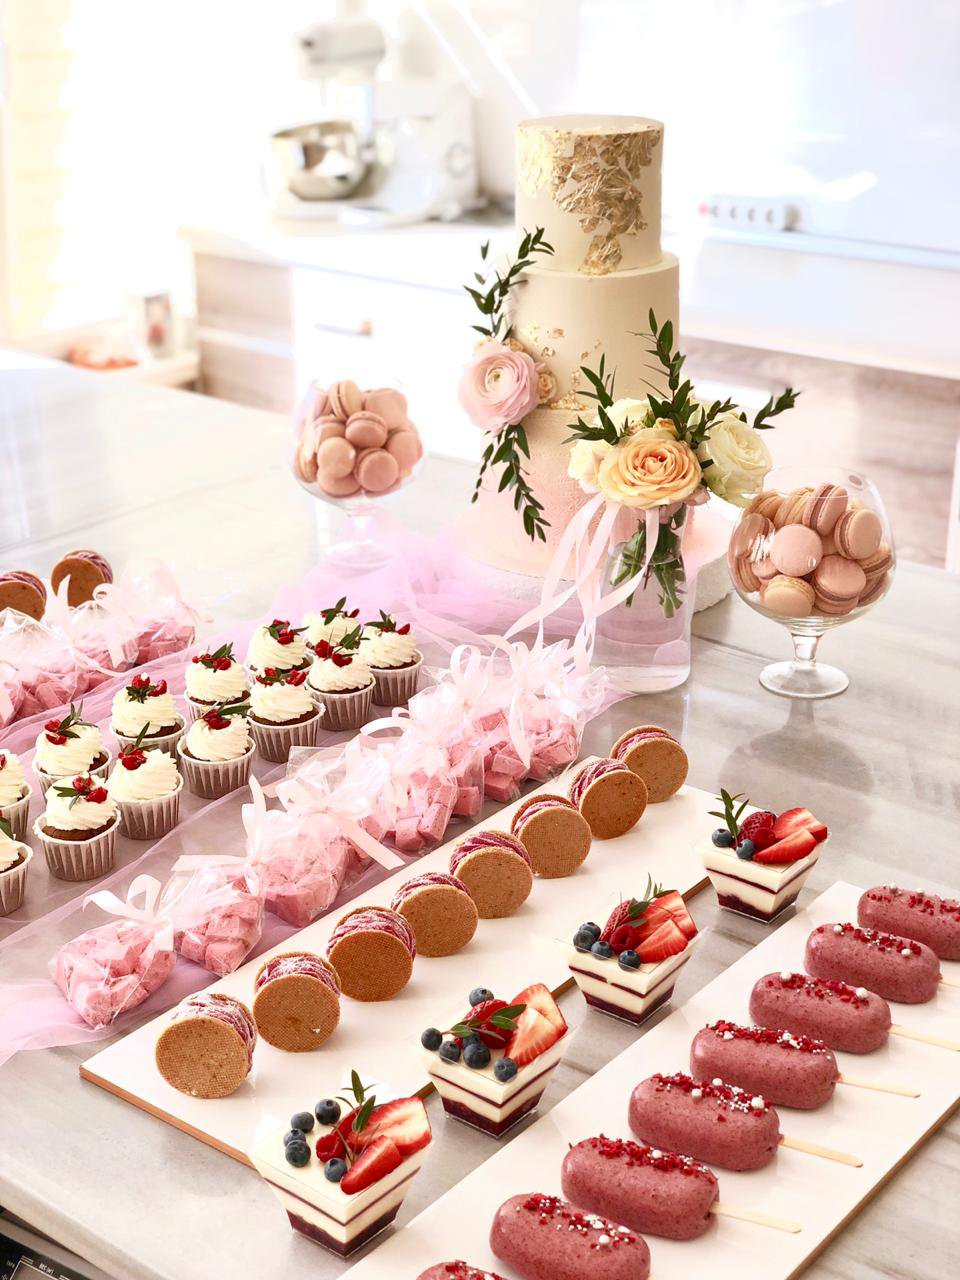 How to arrange a sweet table?